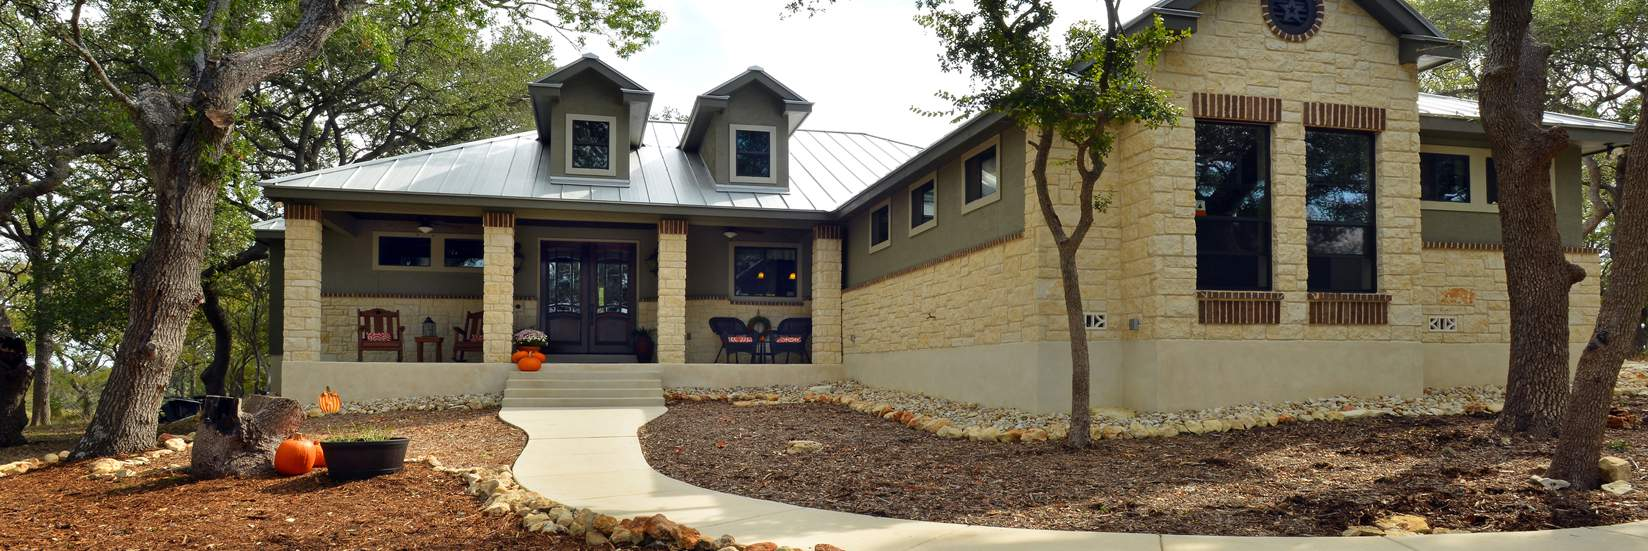 New Braunfels Custom Home Builder Robotena